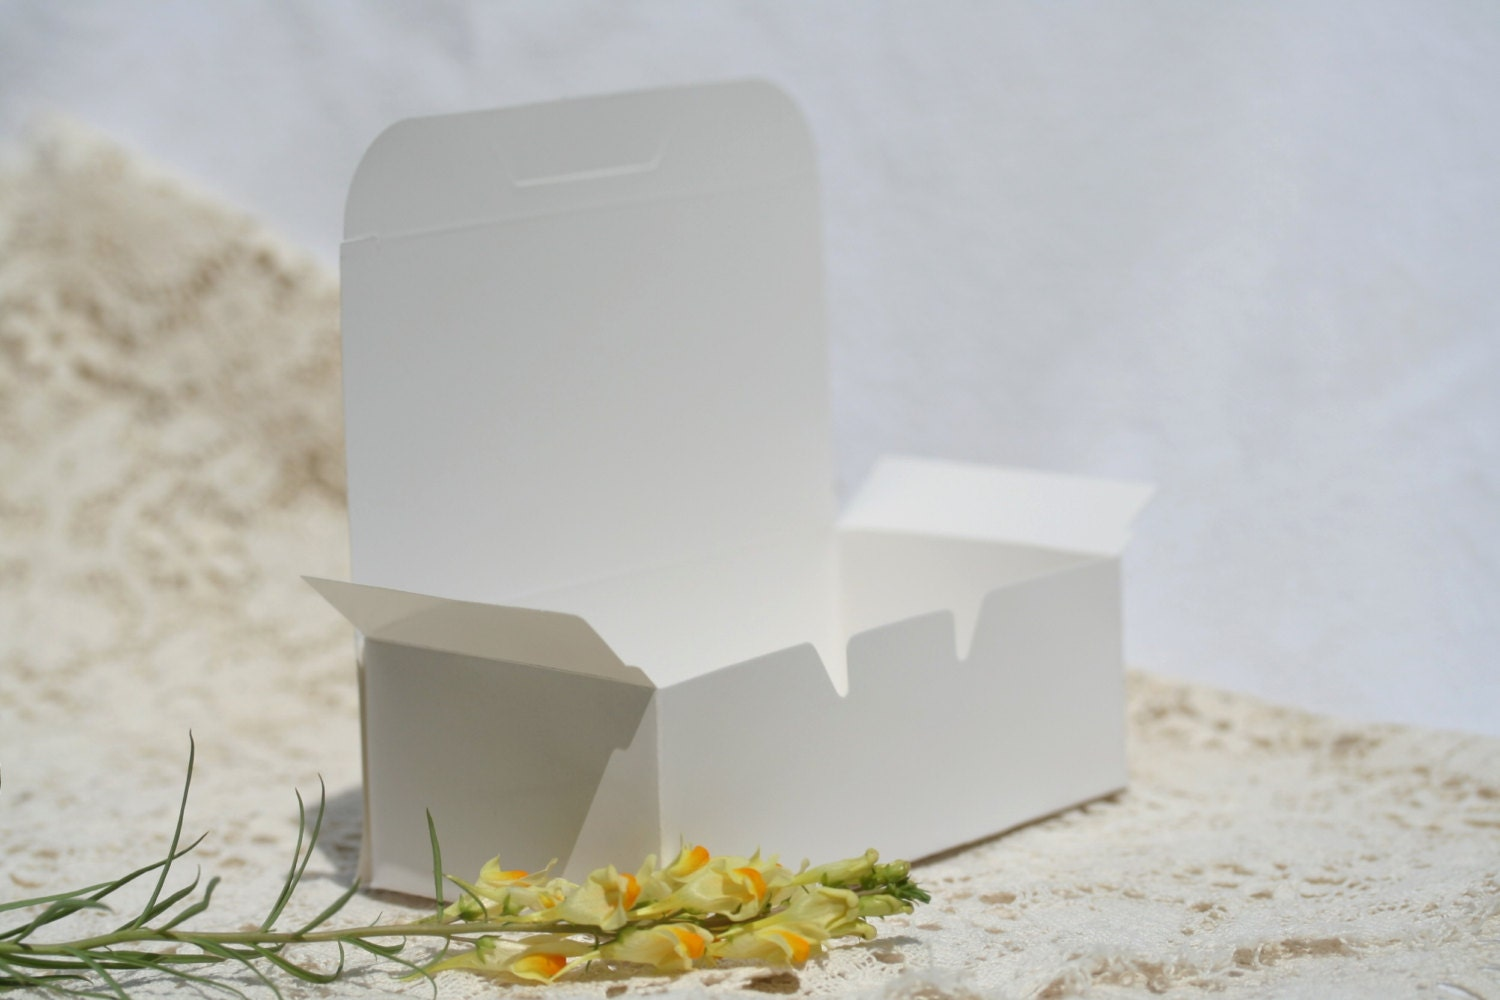 36 Cake Boxes Favor Boxes 5 5 by 1 75 Inches Wedding Cake Box